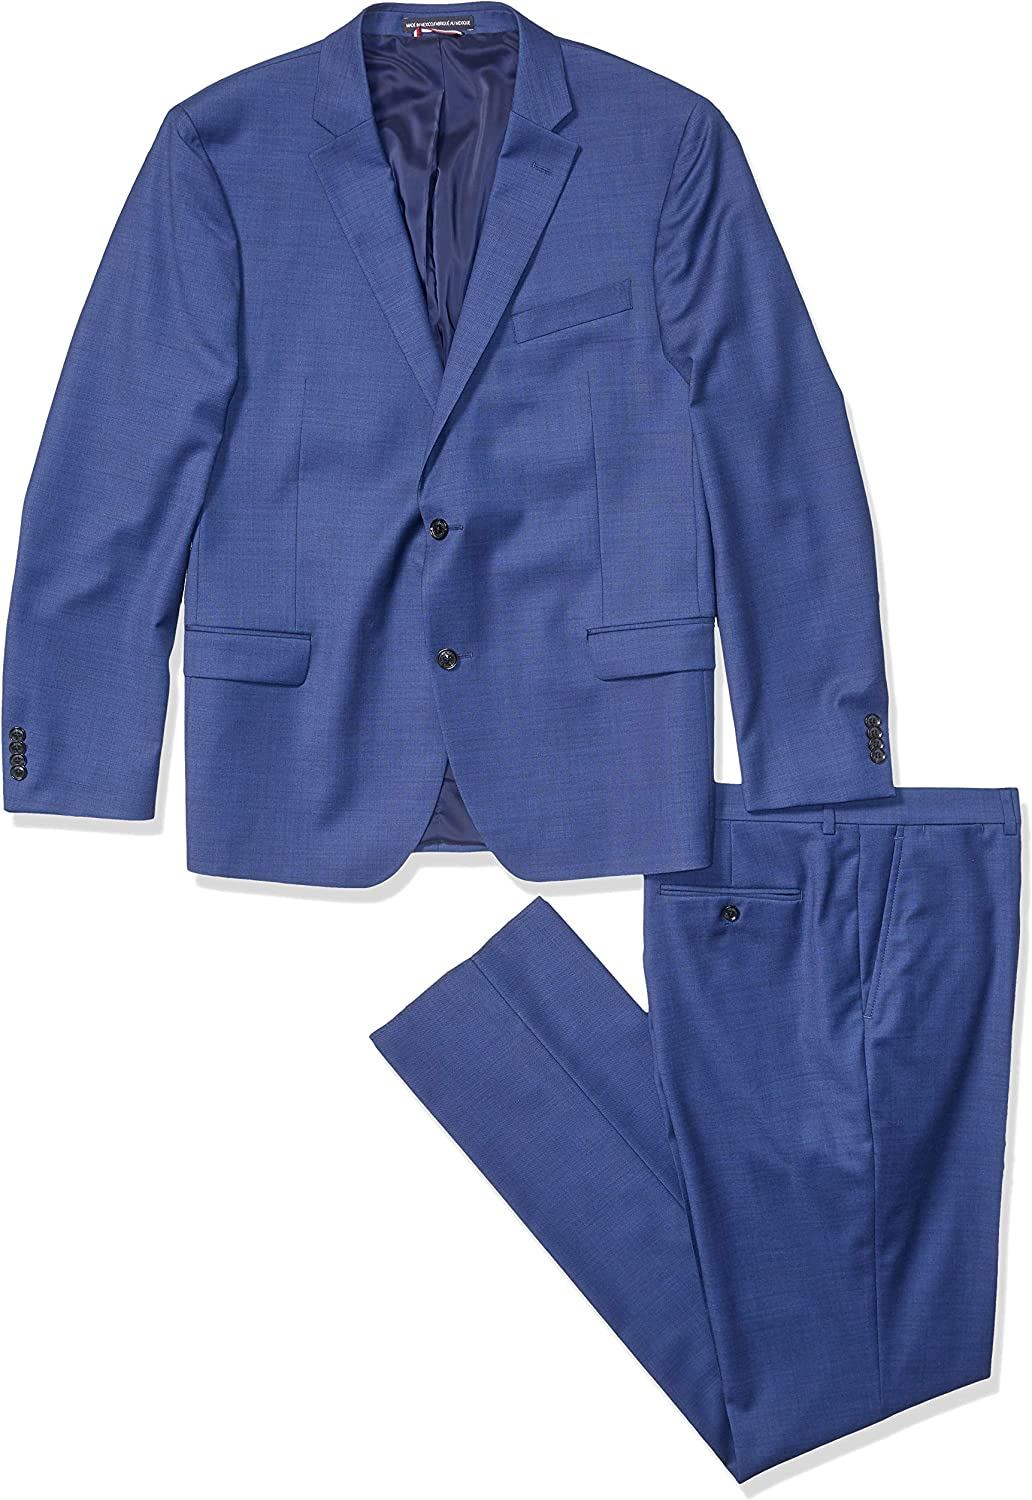 Tommy Hilfiger Men's Slim Fit Performance Suit with Stretch